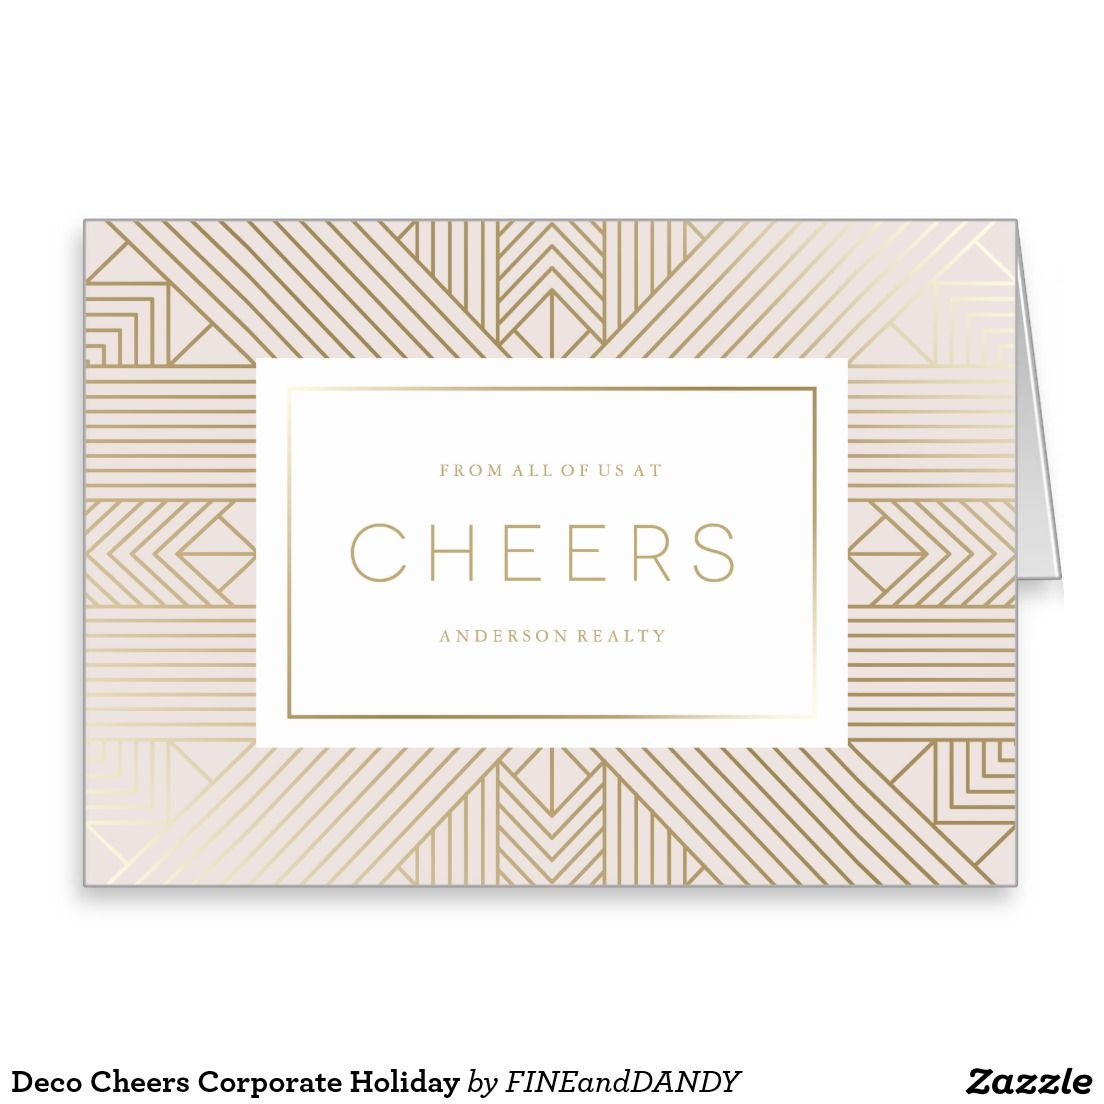 Deco Cheers Corporate Holiday Simply Christmas Cards Pinterest